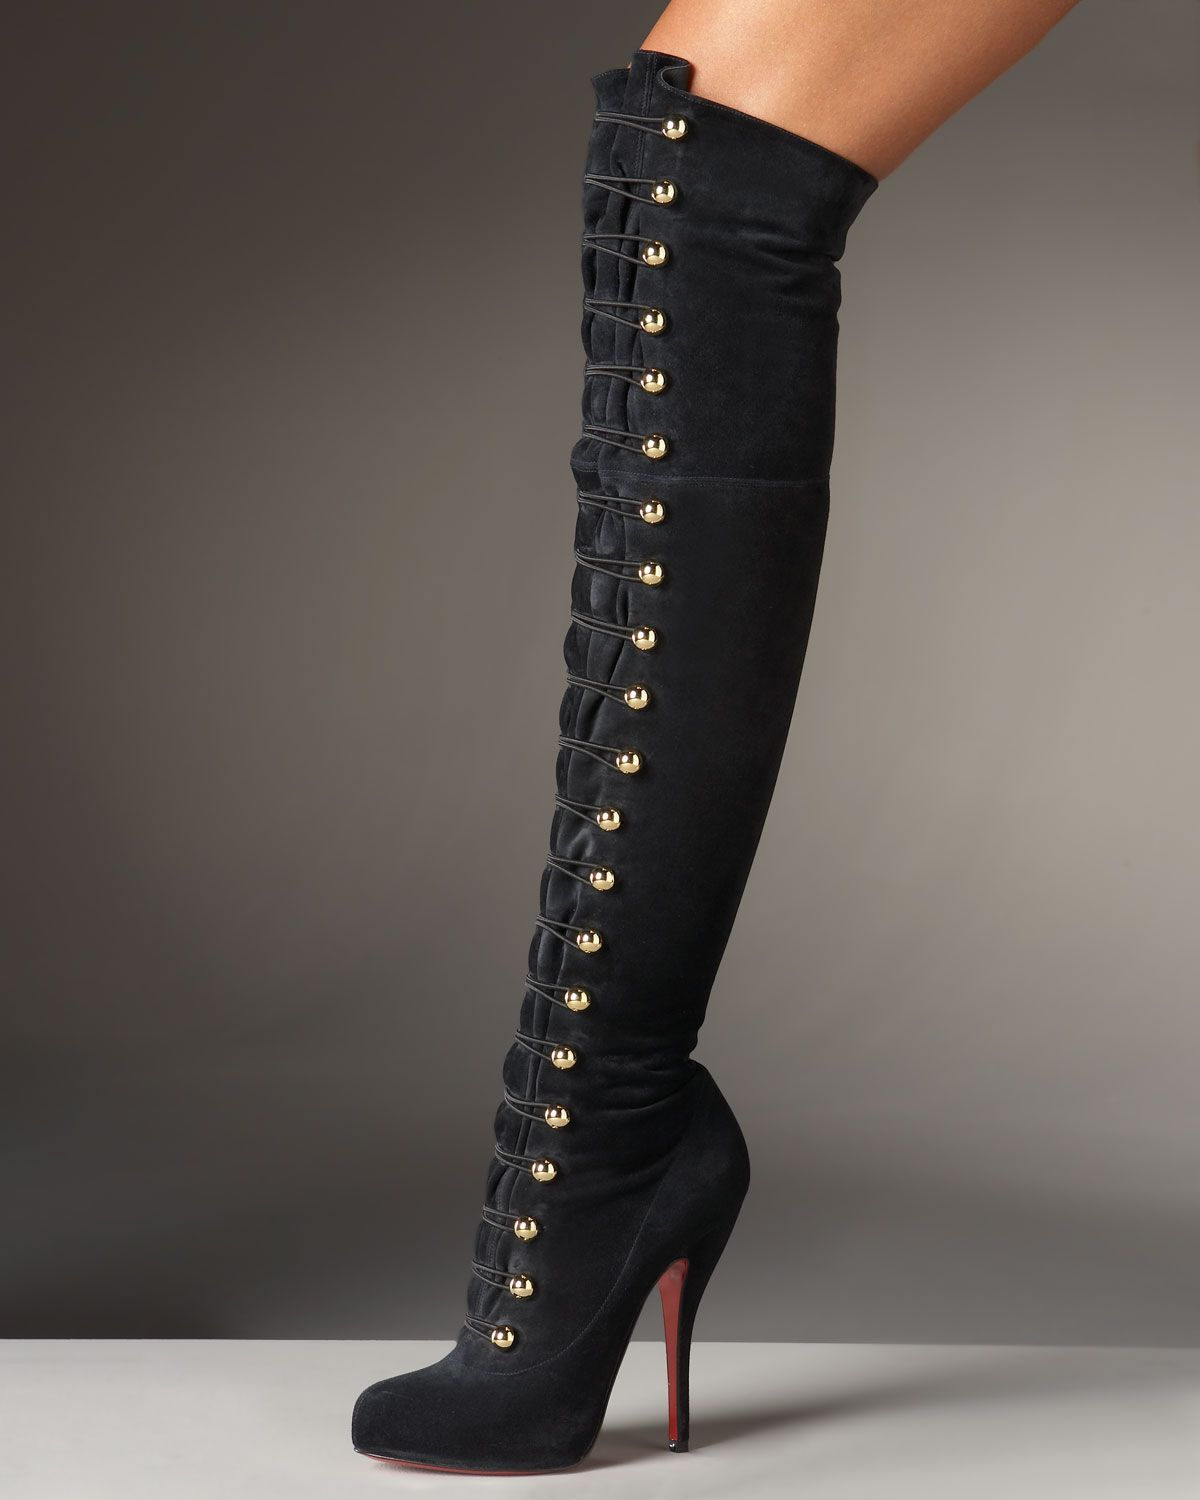 christian louboutin over the knee lace up boots